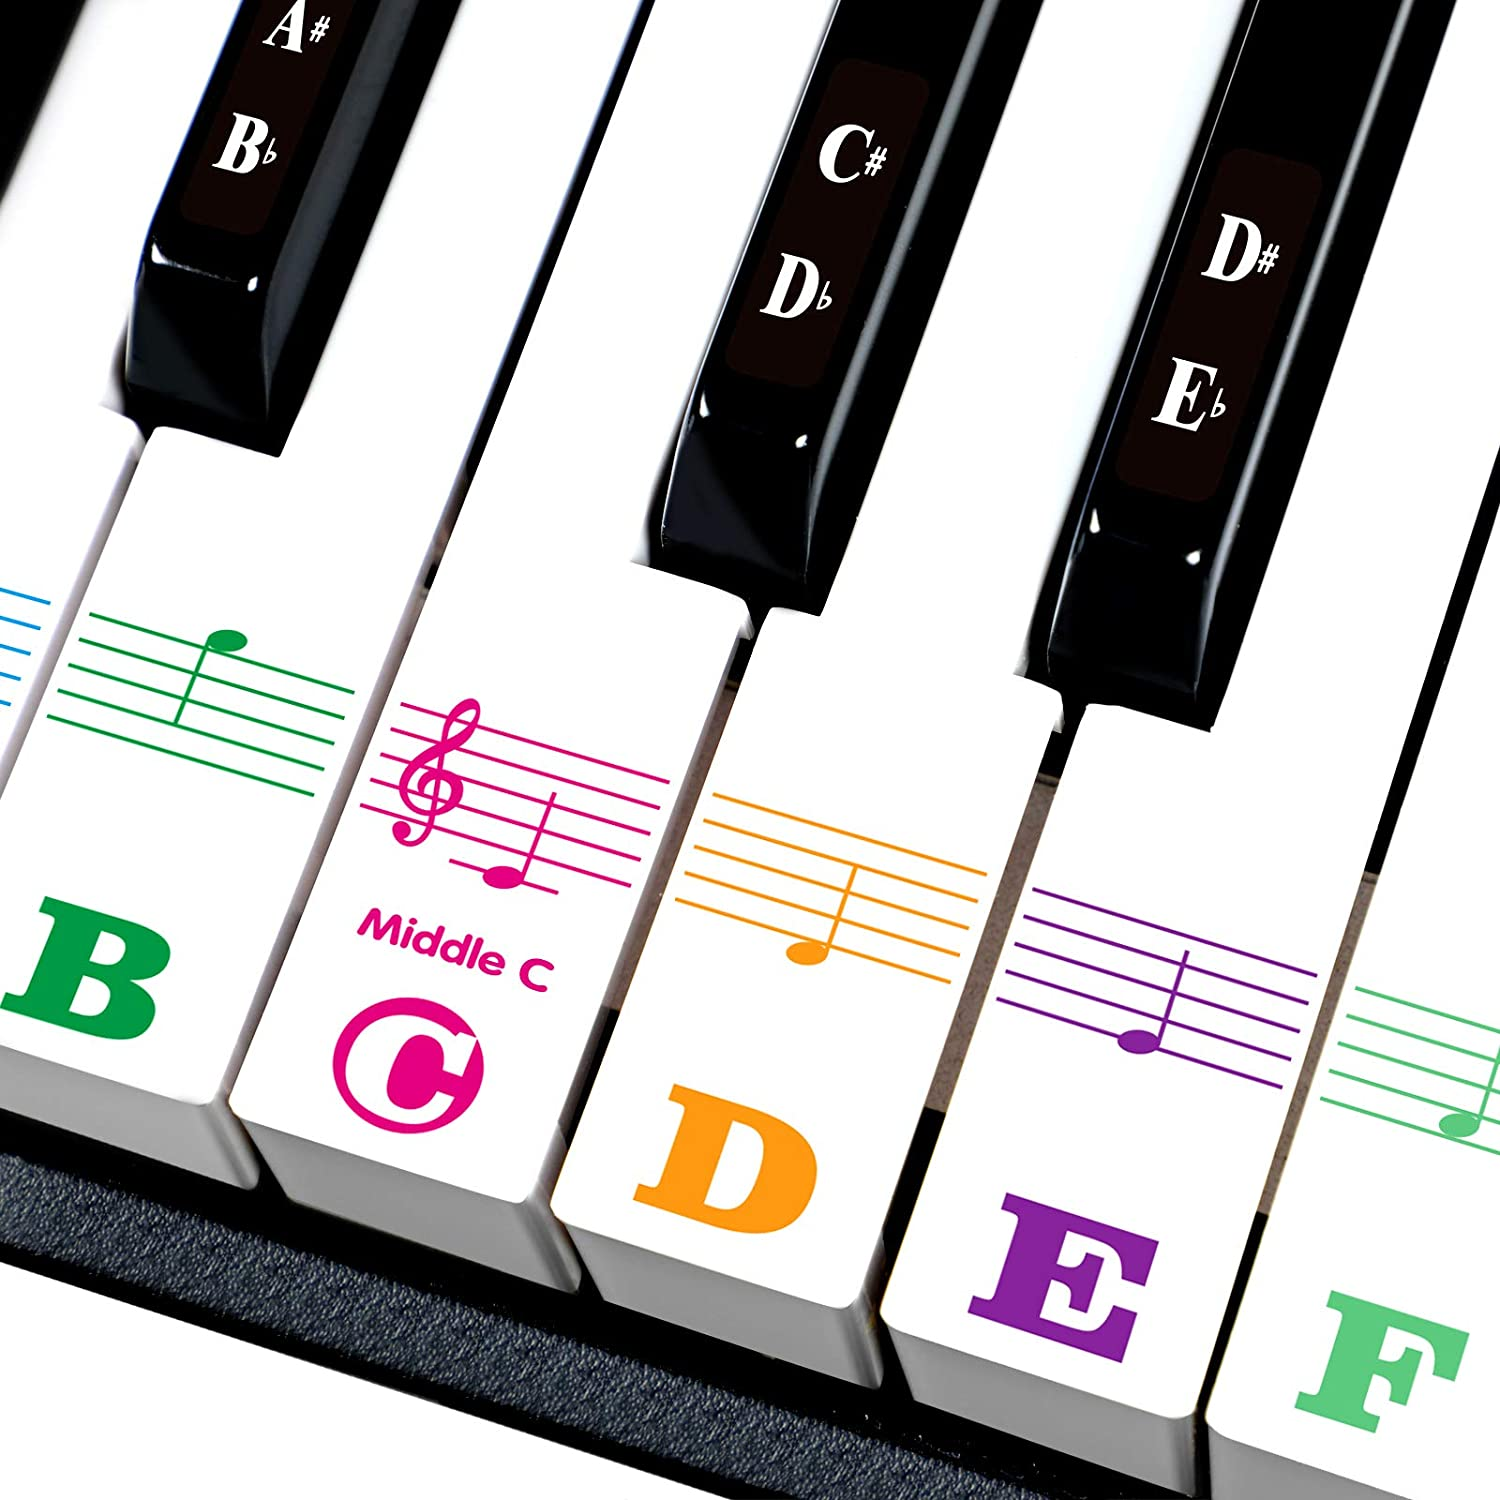 Piano keys Stickers for 88 61 Transparent Removabl 37 49 54 Key. Super intense Ranking TOP4 SALE